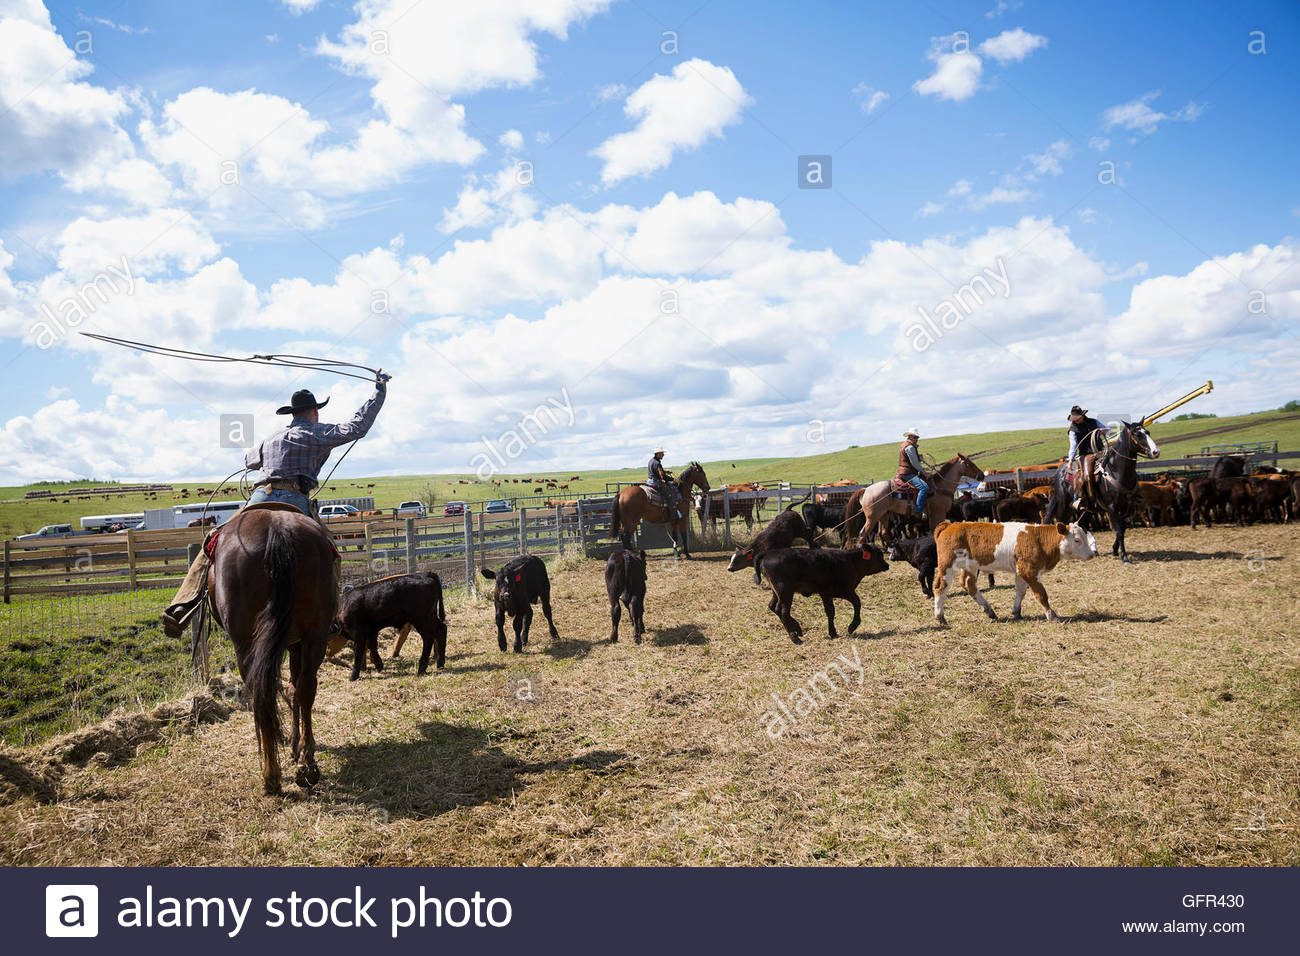 Cattle ranchers on horseback lassoing cows - Stock Image